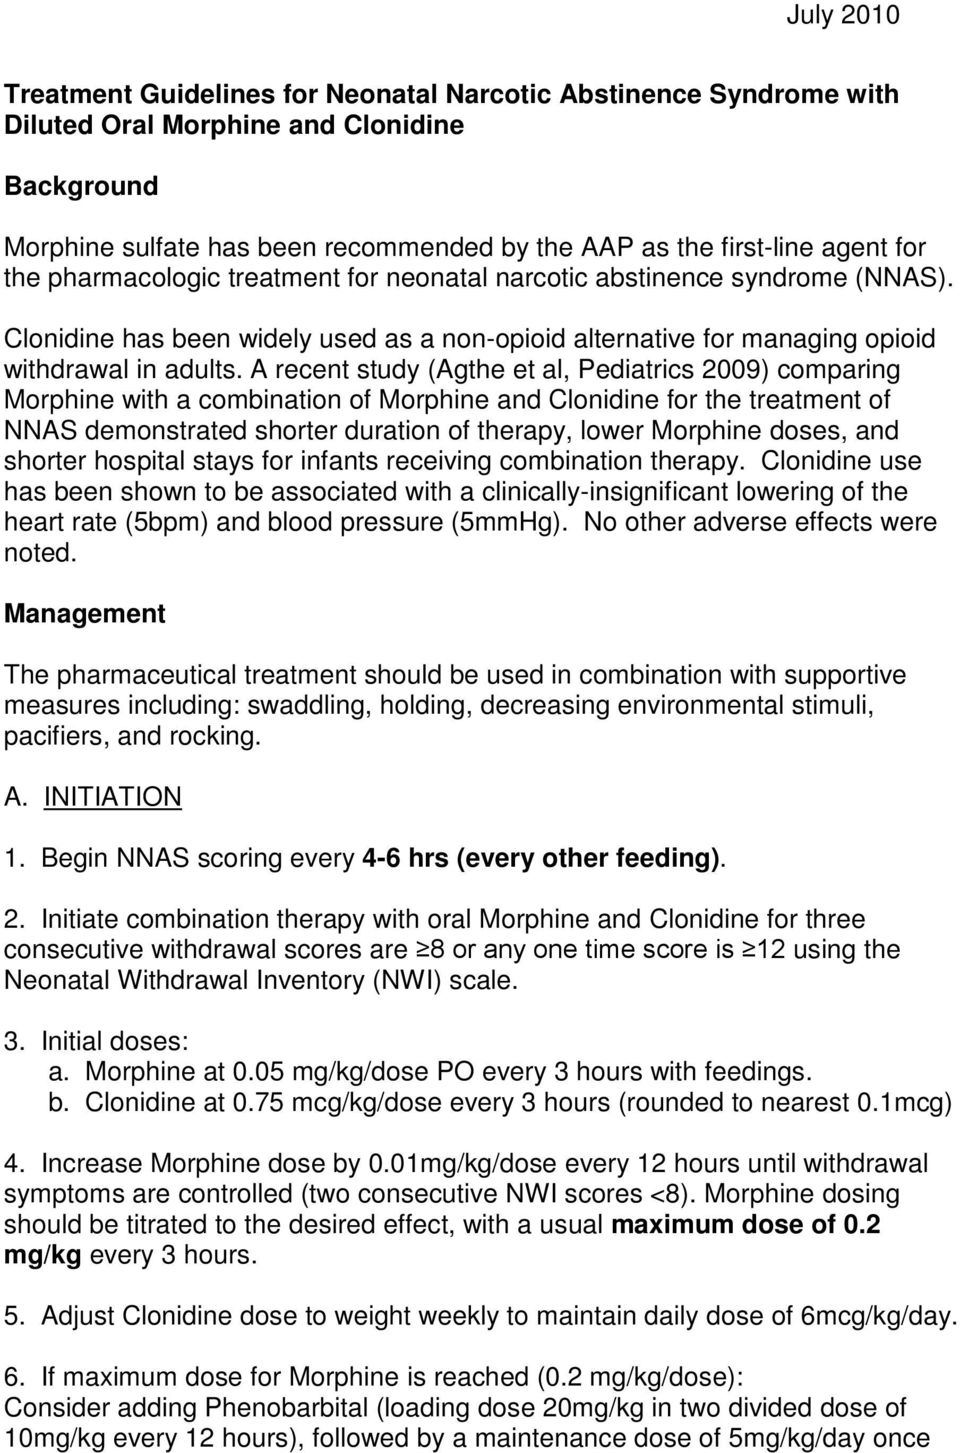 Treatment Guidelines for Neonatal Narcotic Abstinence